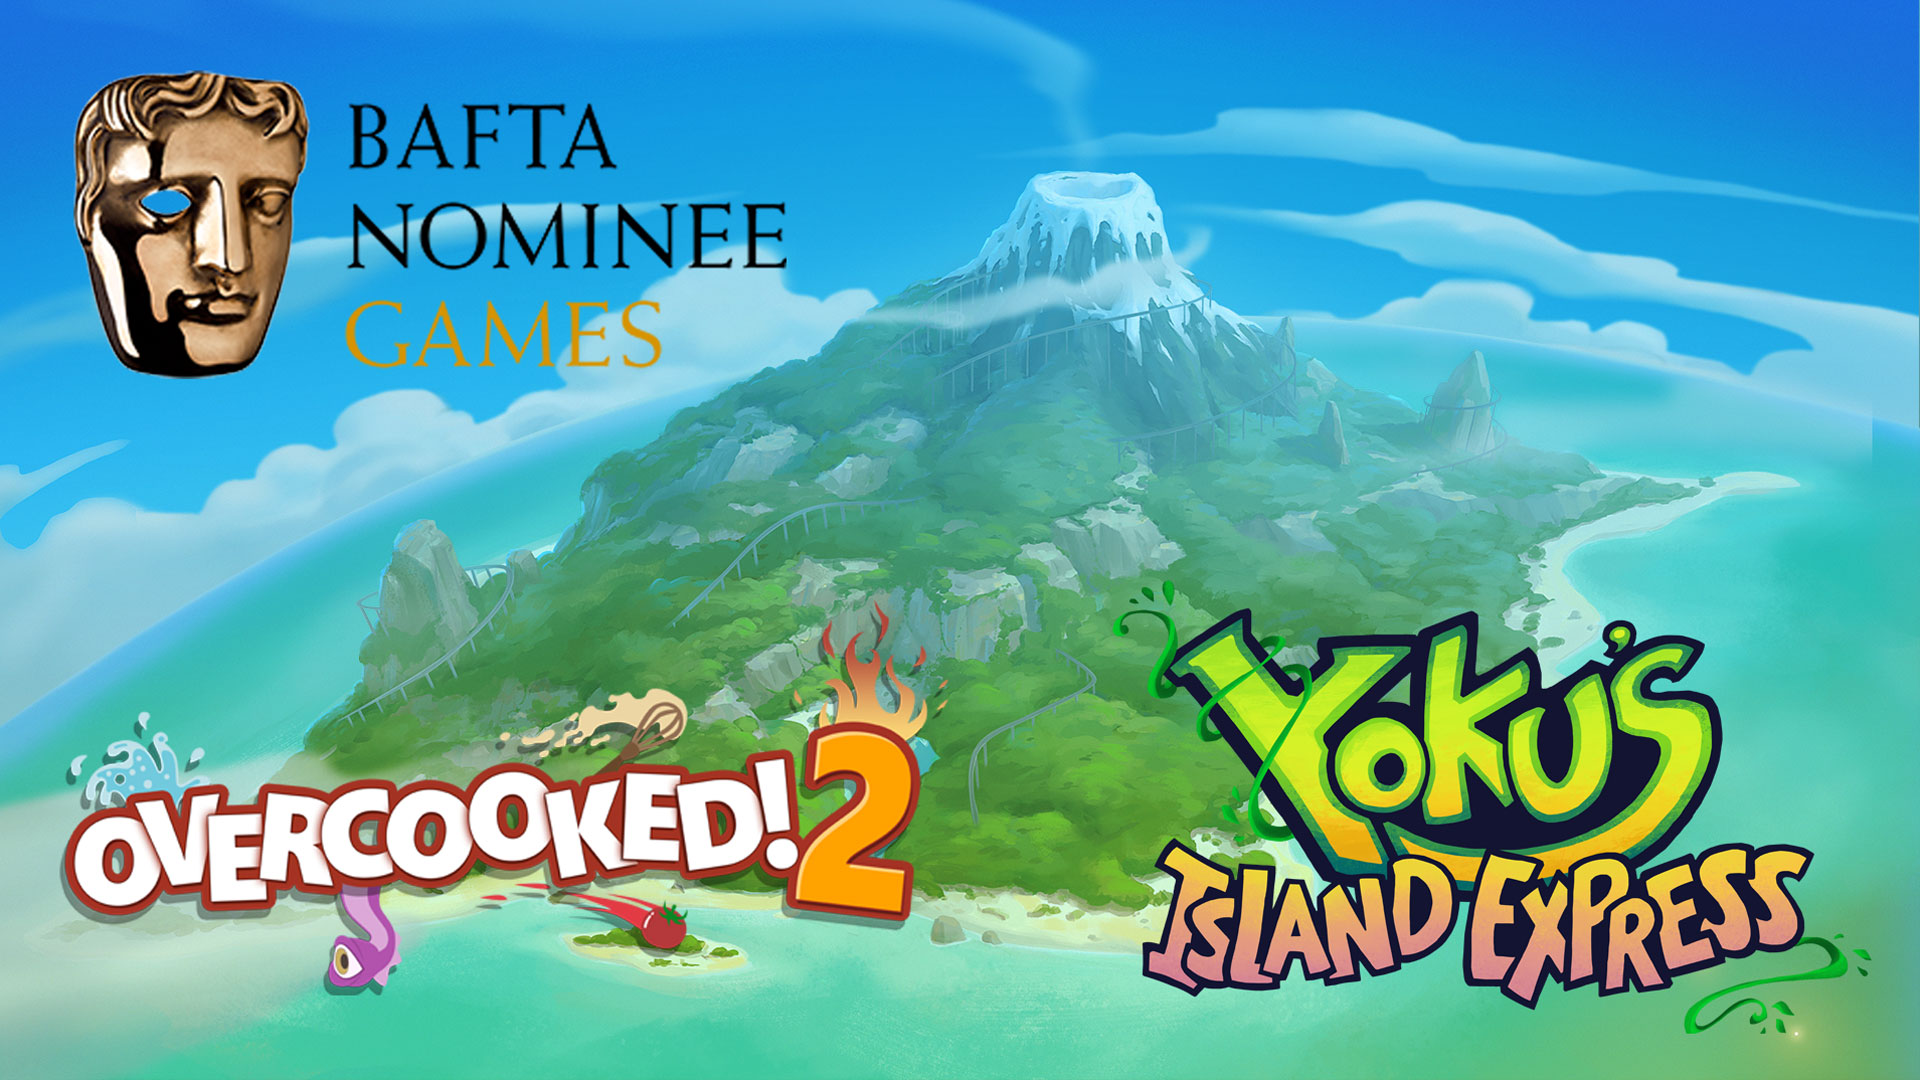 BAFTA Games Awards nominations for Overcooked! 2 and Yoku's Island Express!